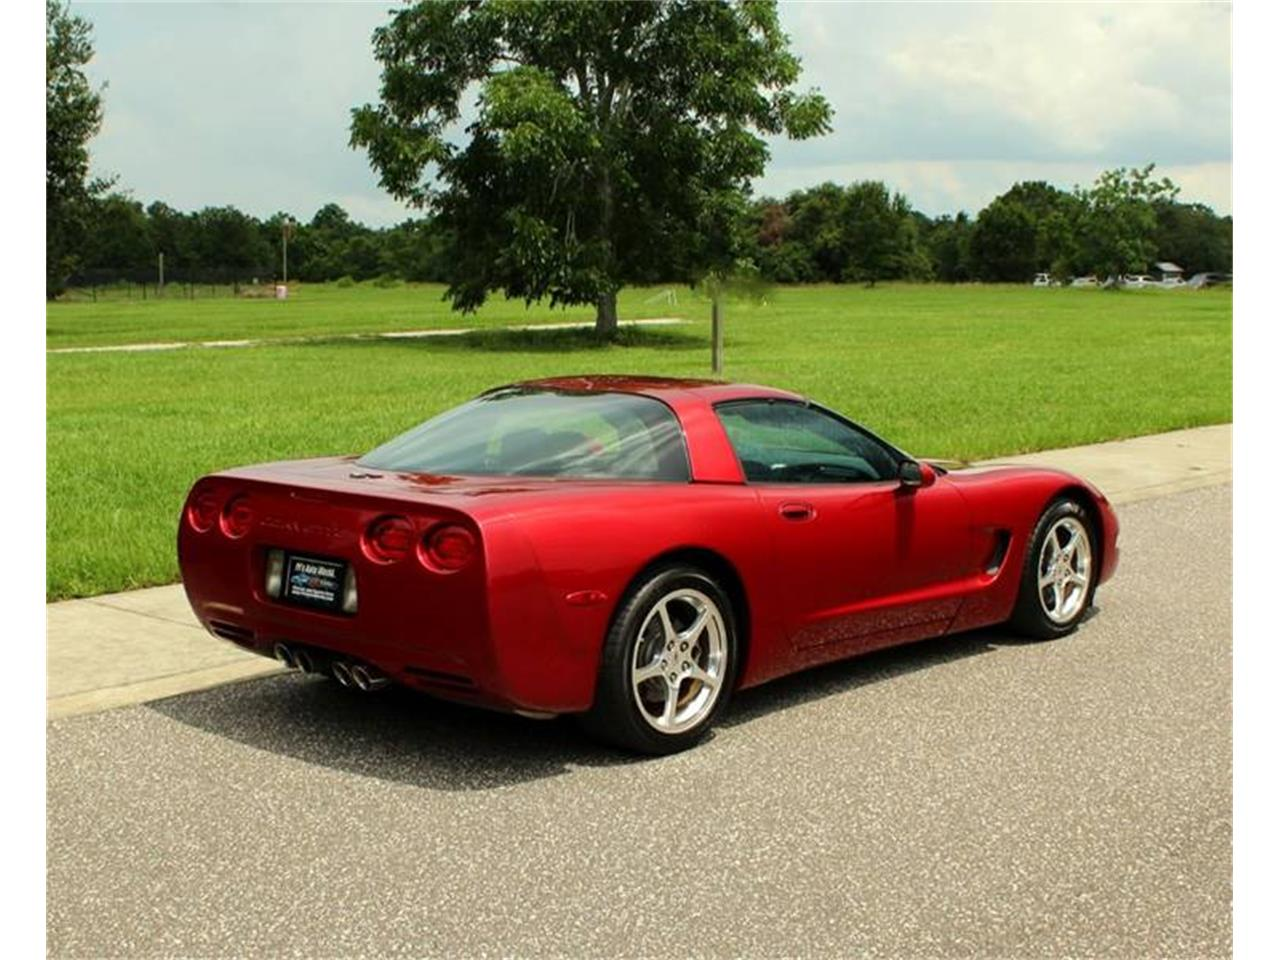 Large Picture of 2004 Chevrolet Corvette - $13,900.00 Offered by PJ's Auto World - QCZ4